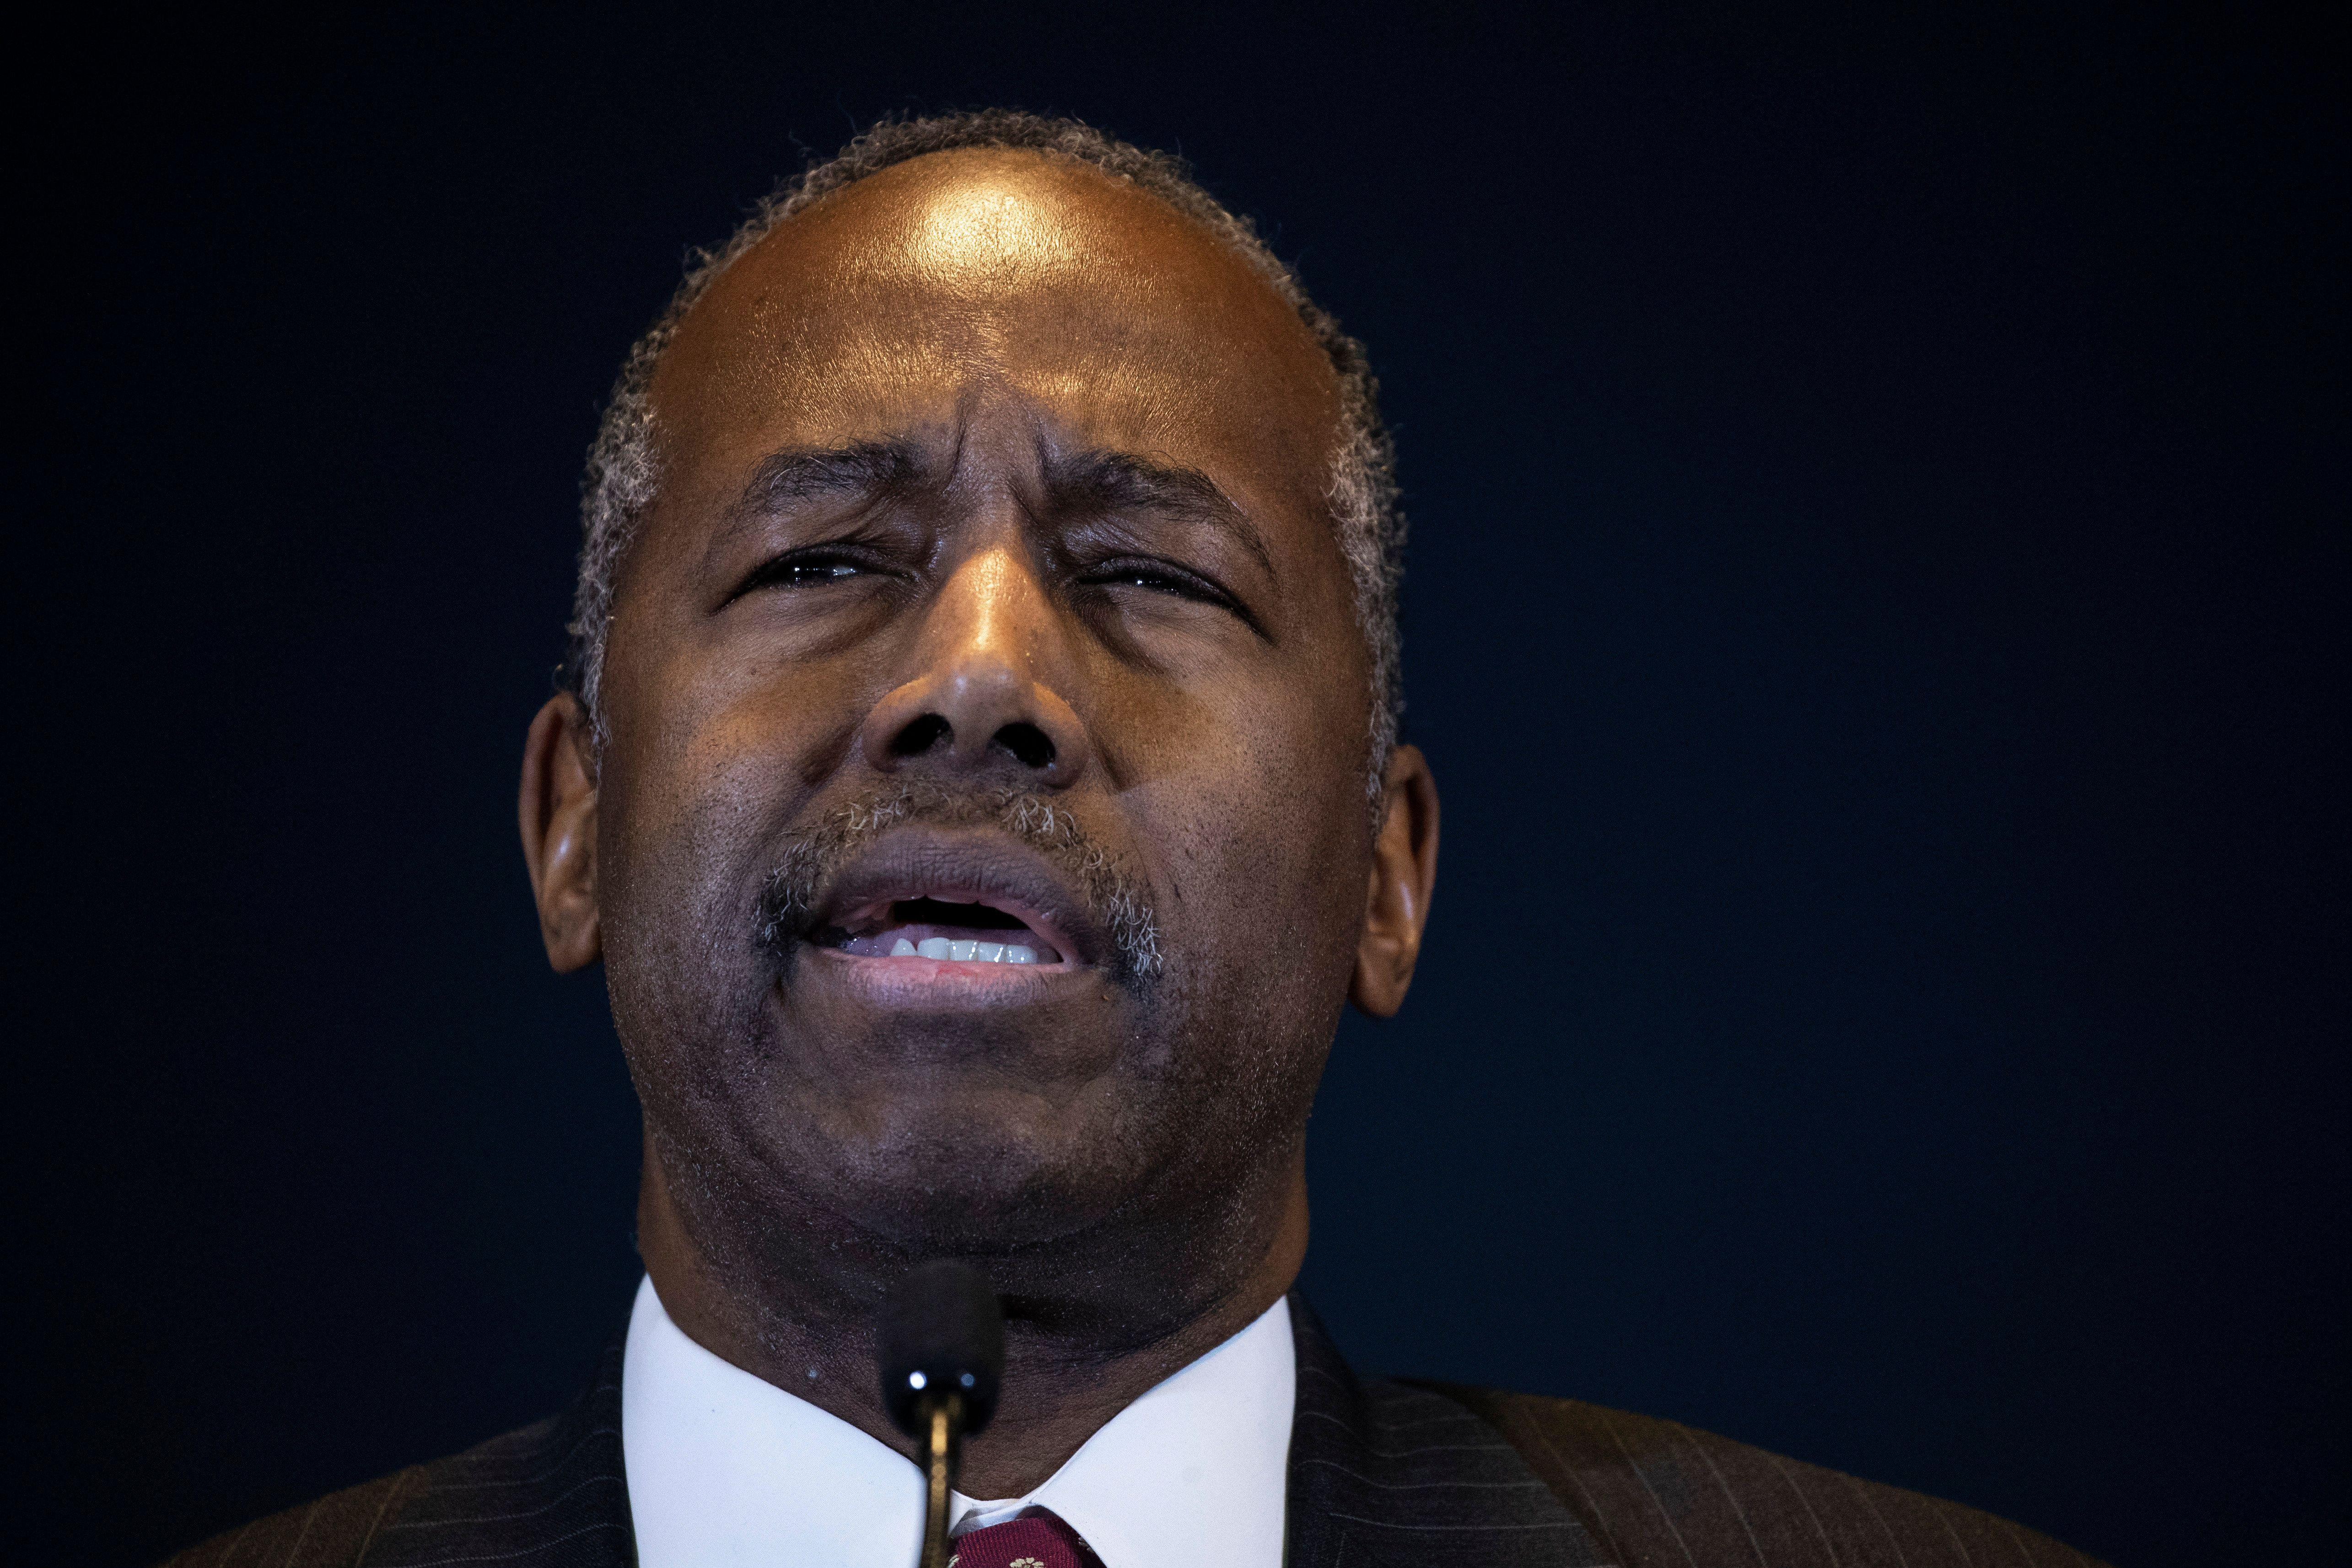 Ben Carson: HUD will take 'as much time as is necessary' on housing finance reform